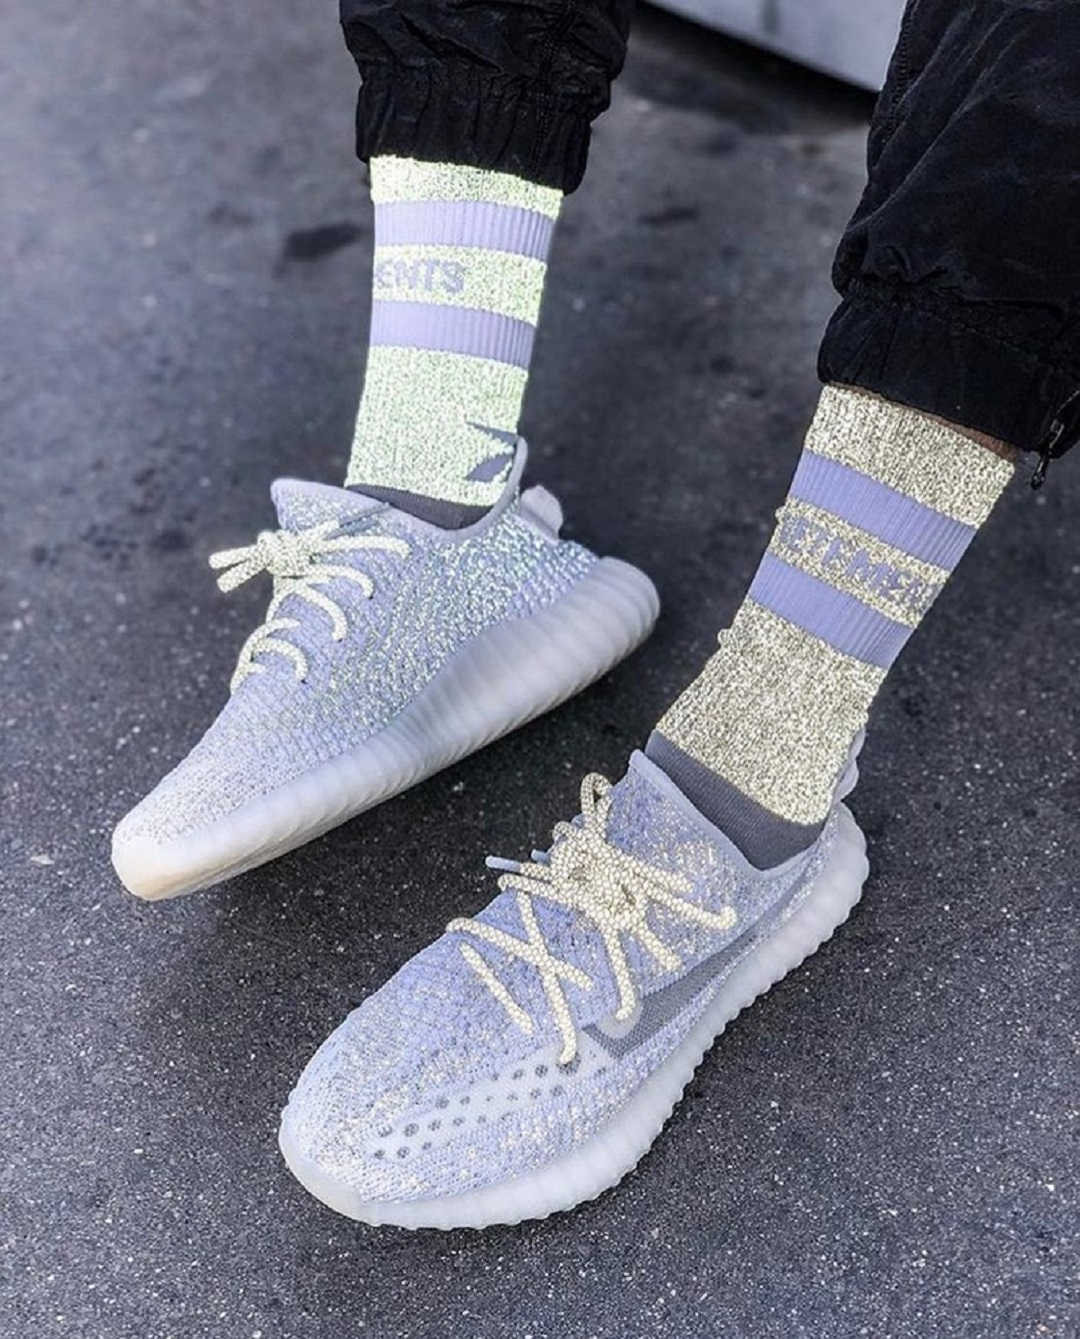 Authentic Adidas Yeezy Boost 350 V2 Static